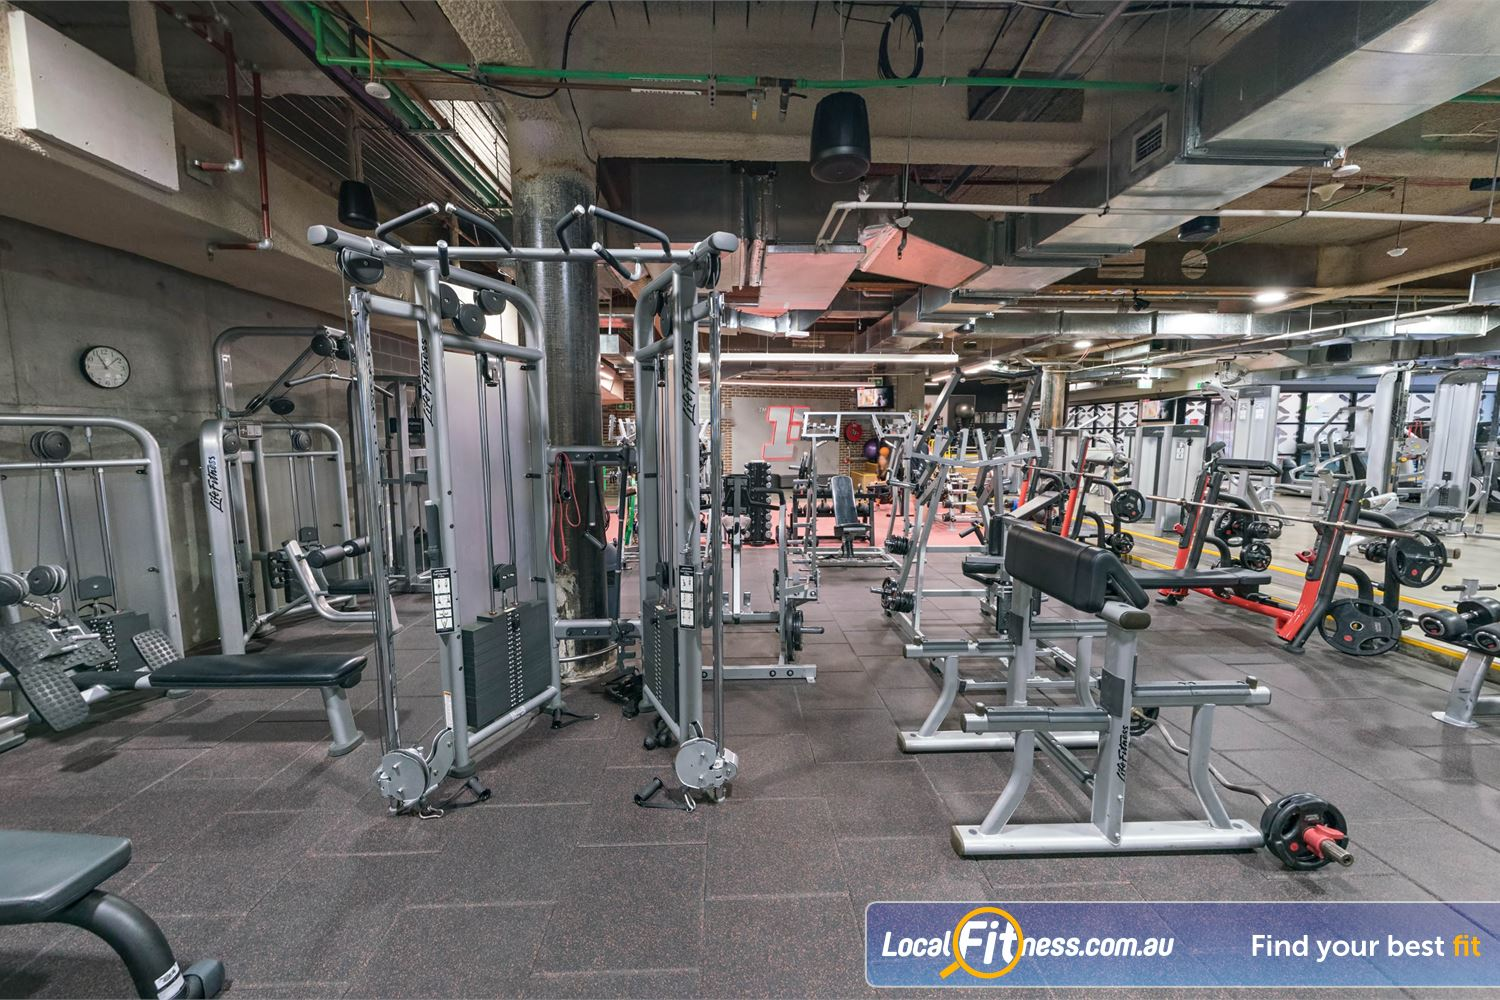 Fitness First Platinum Shelley St Sydney Our pin-loading machines cater for every muscle group.